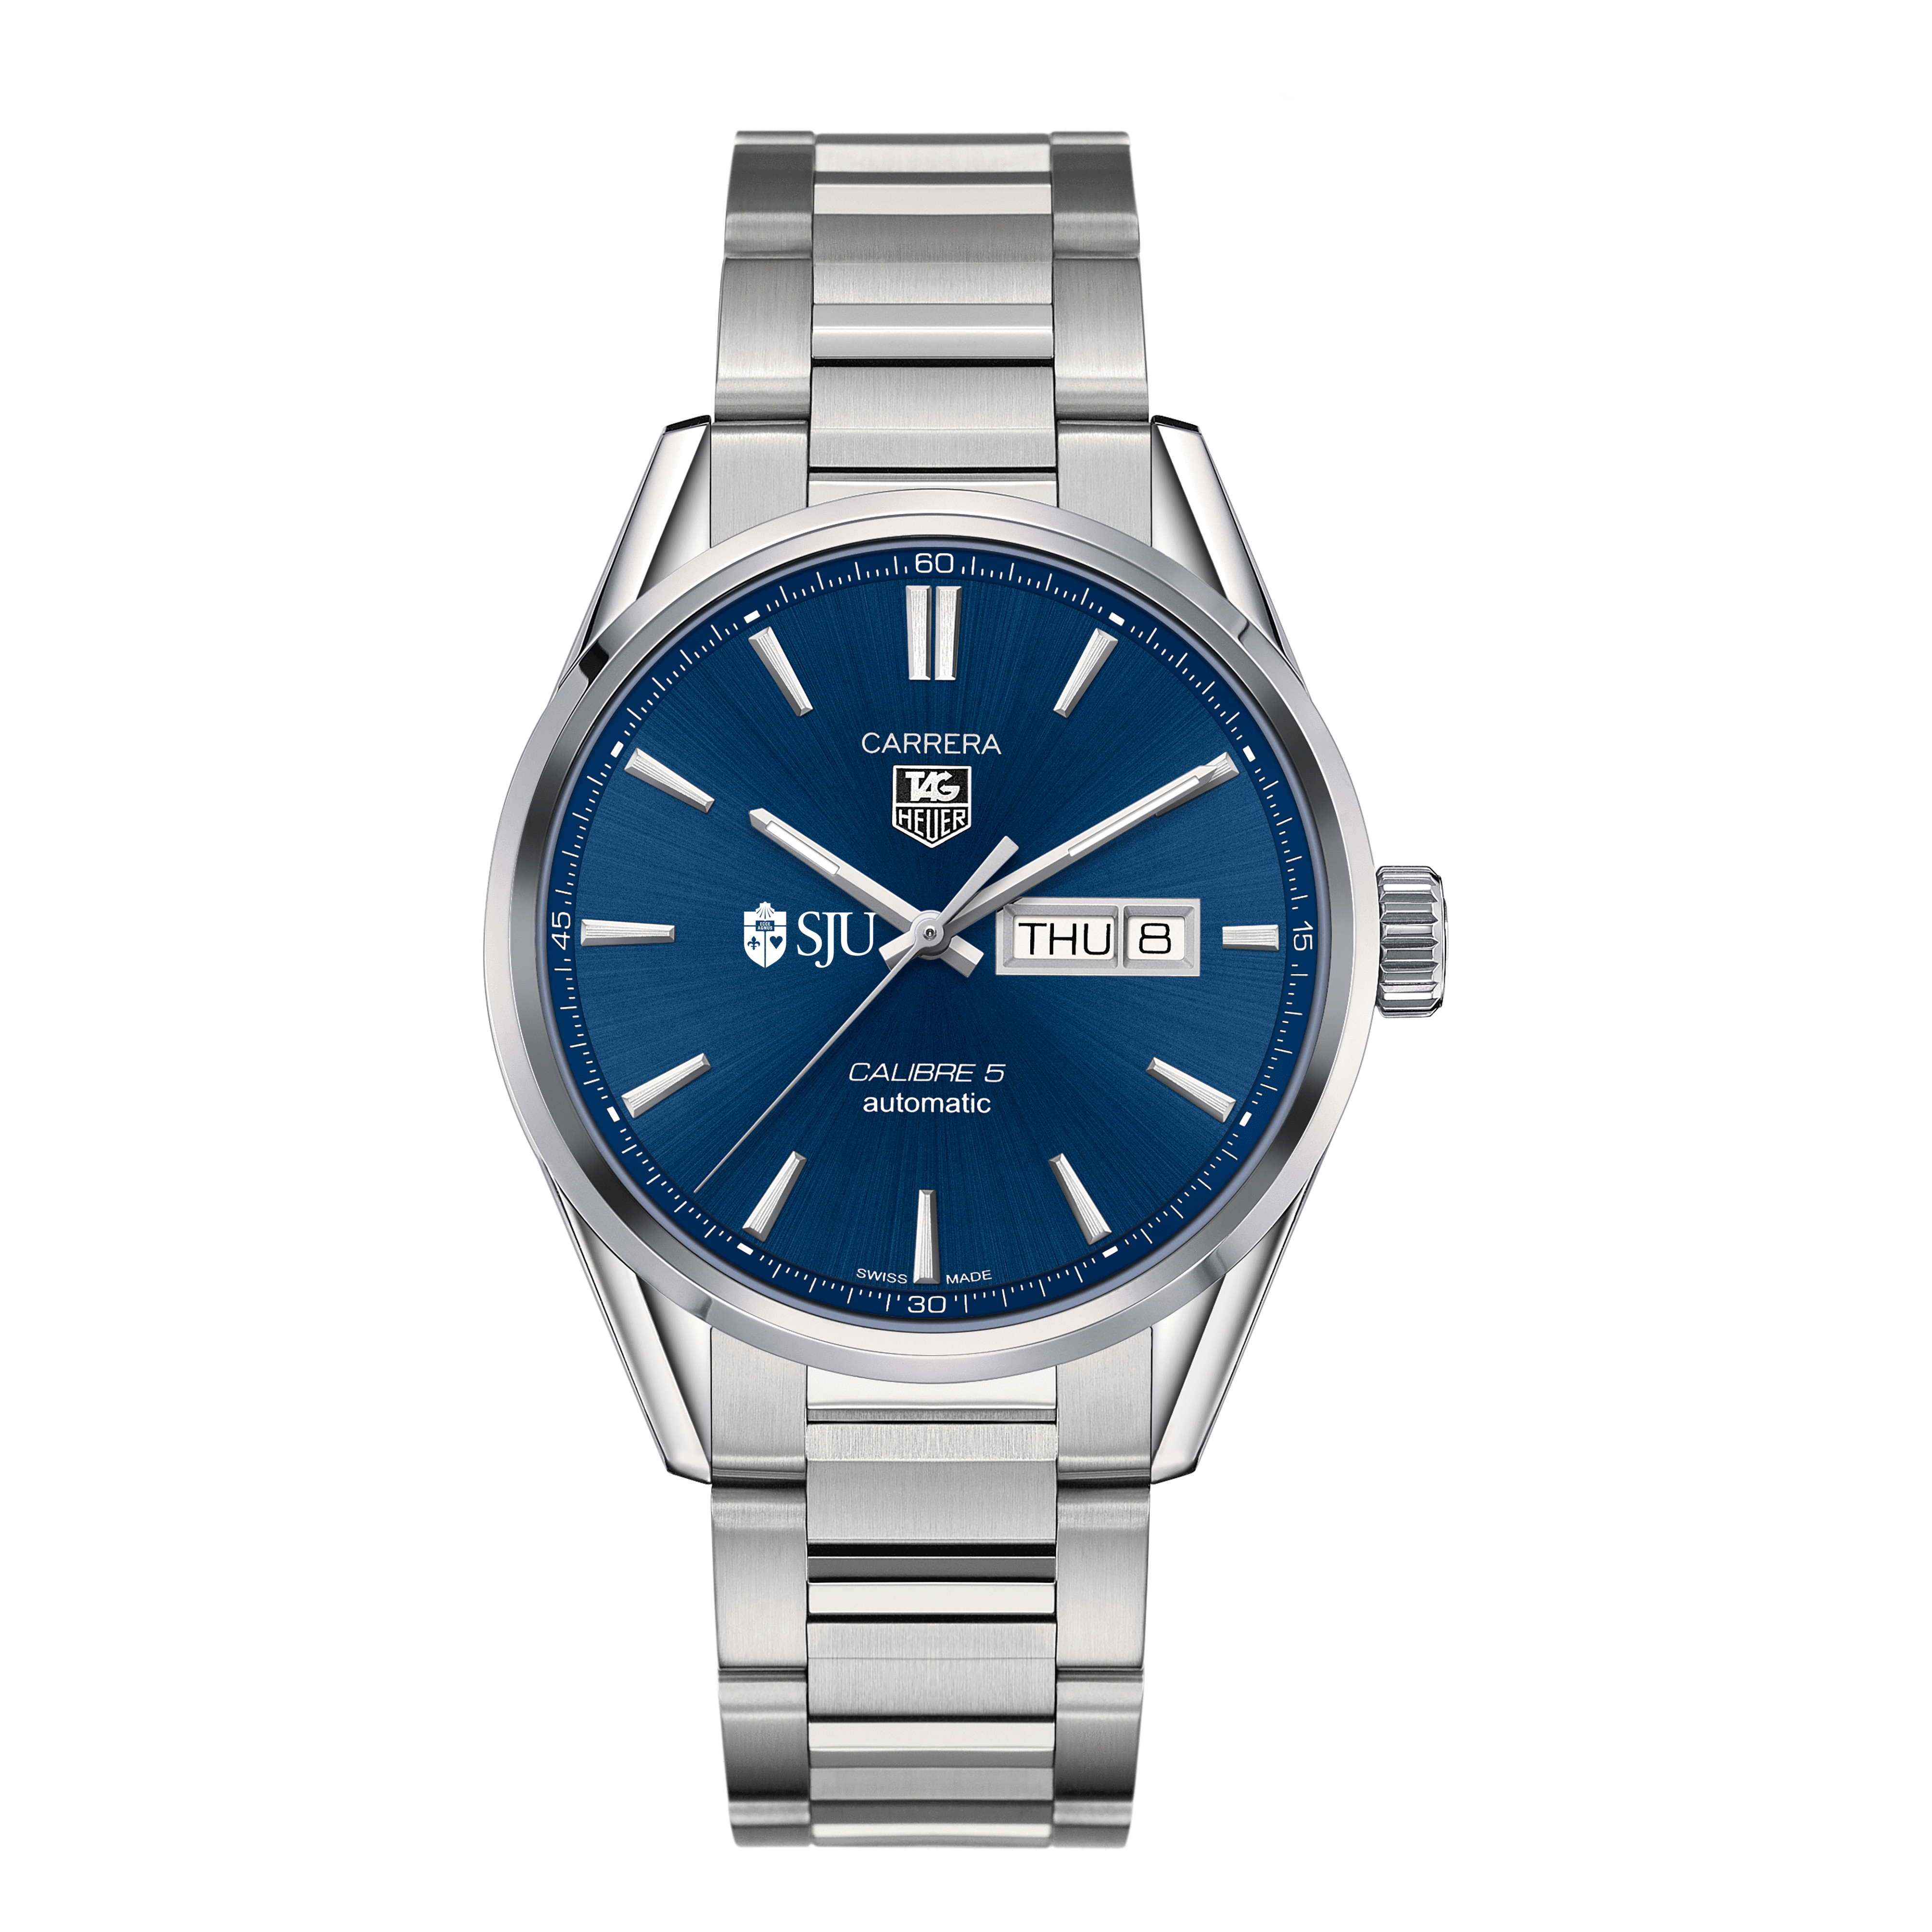 St. John's University Men's TAG Heuer Carrera with Day-Date - Image 2